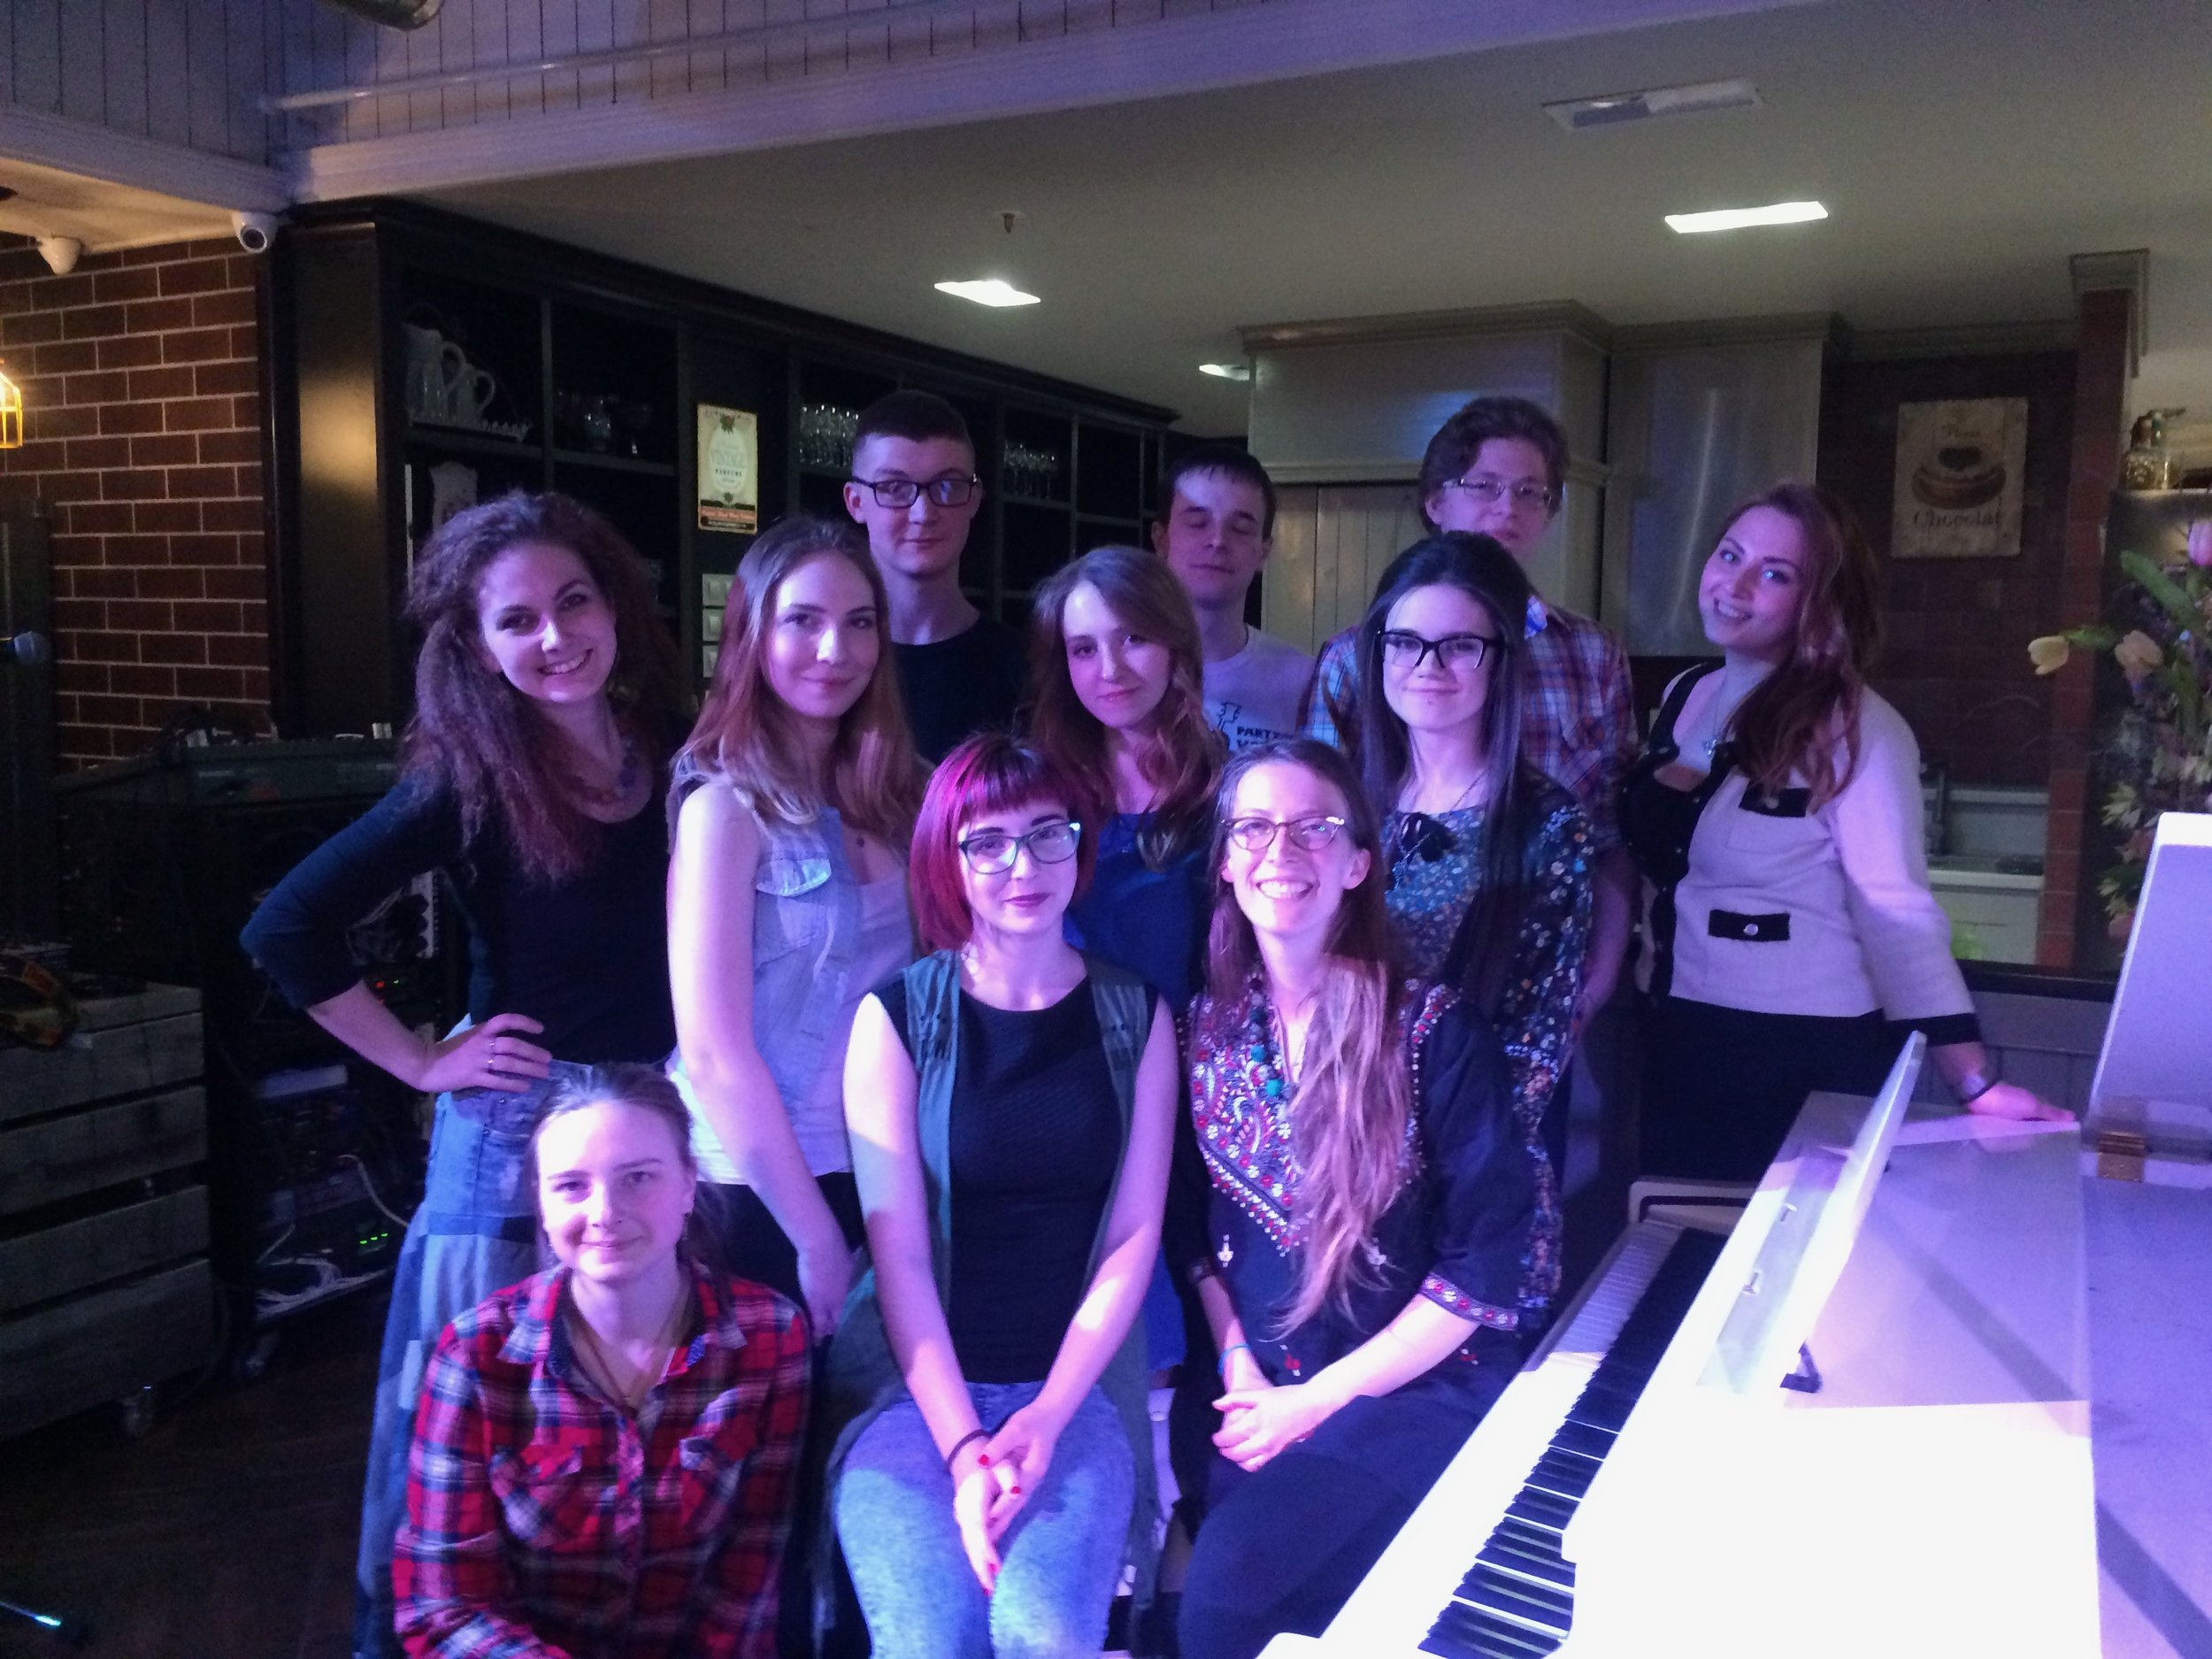 Students from the Arkhangelsk College of Music, who performed several traditional Appalachian folk songs with me at a local venue.